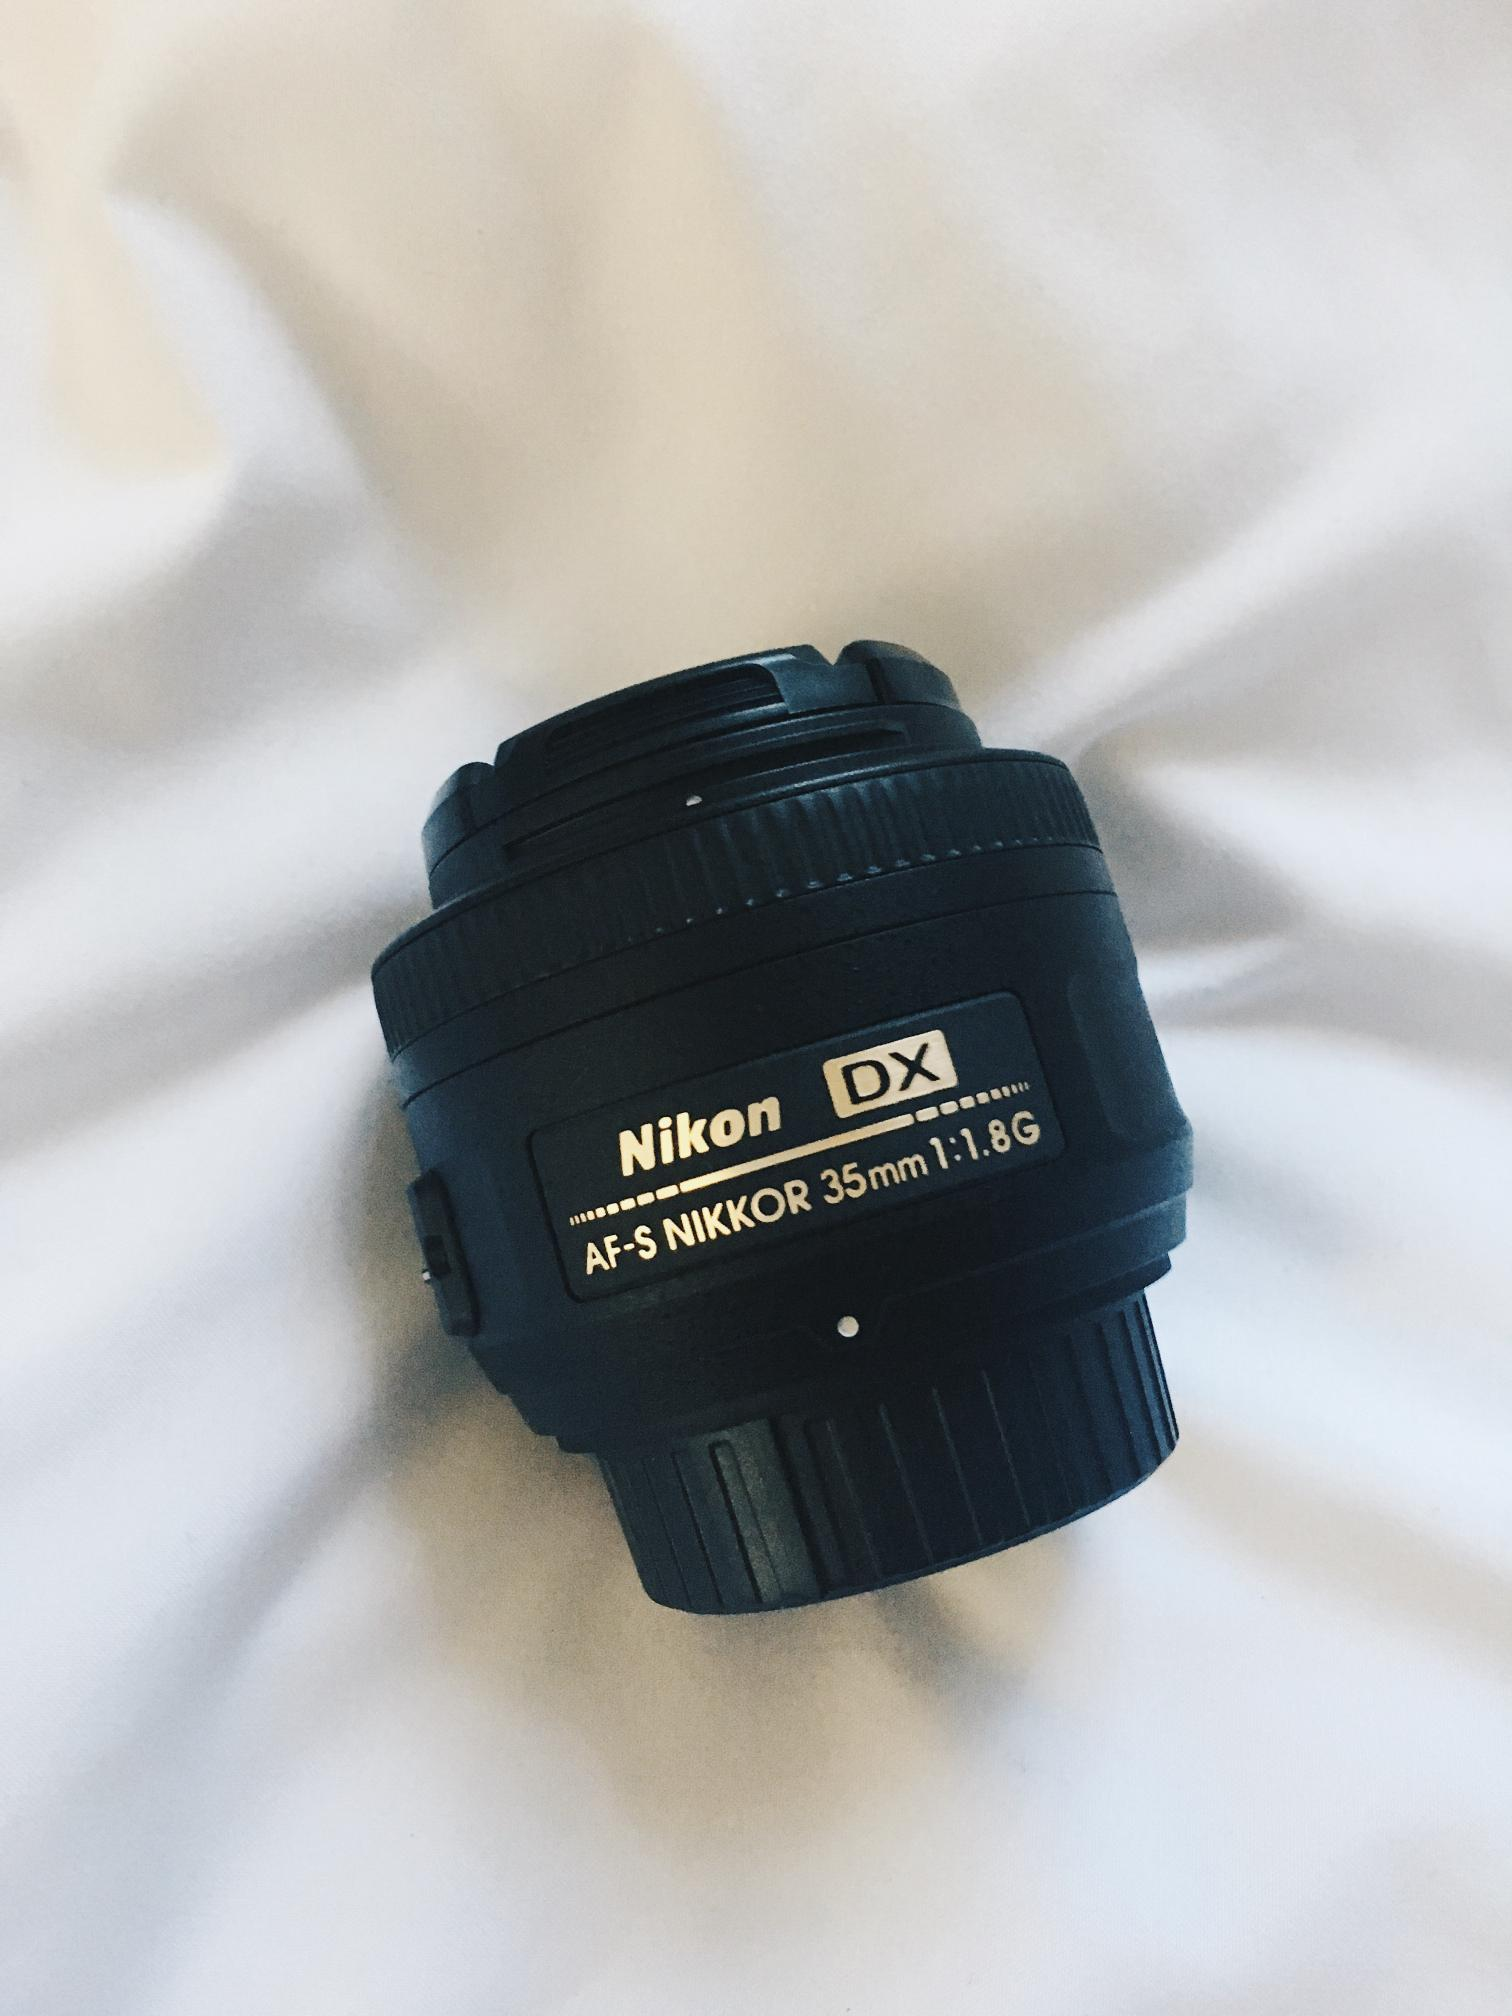 the 35 mm lens